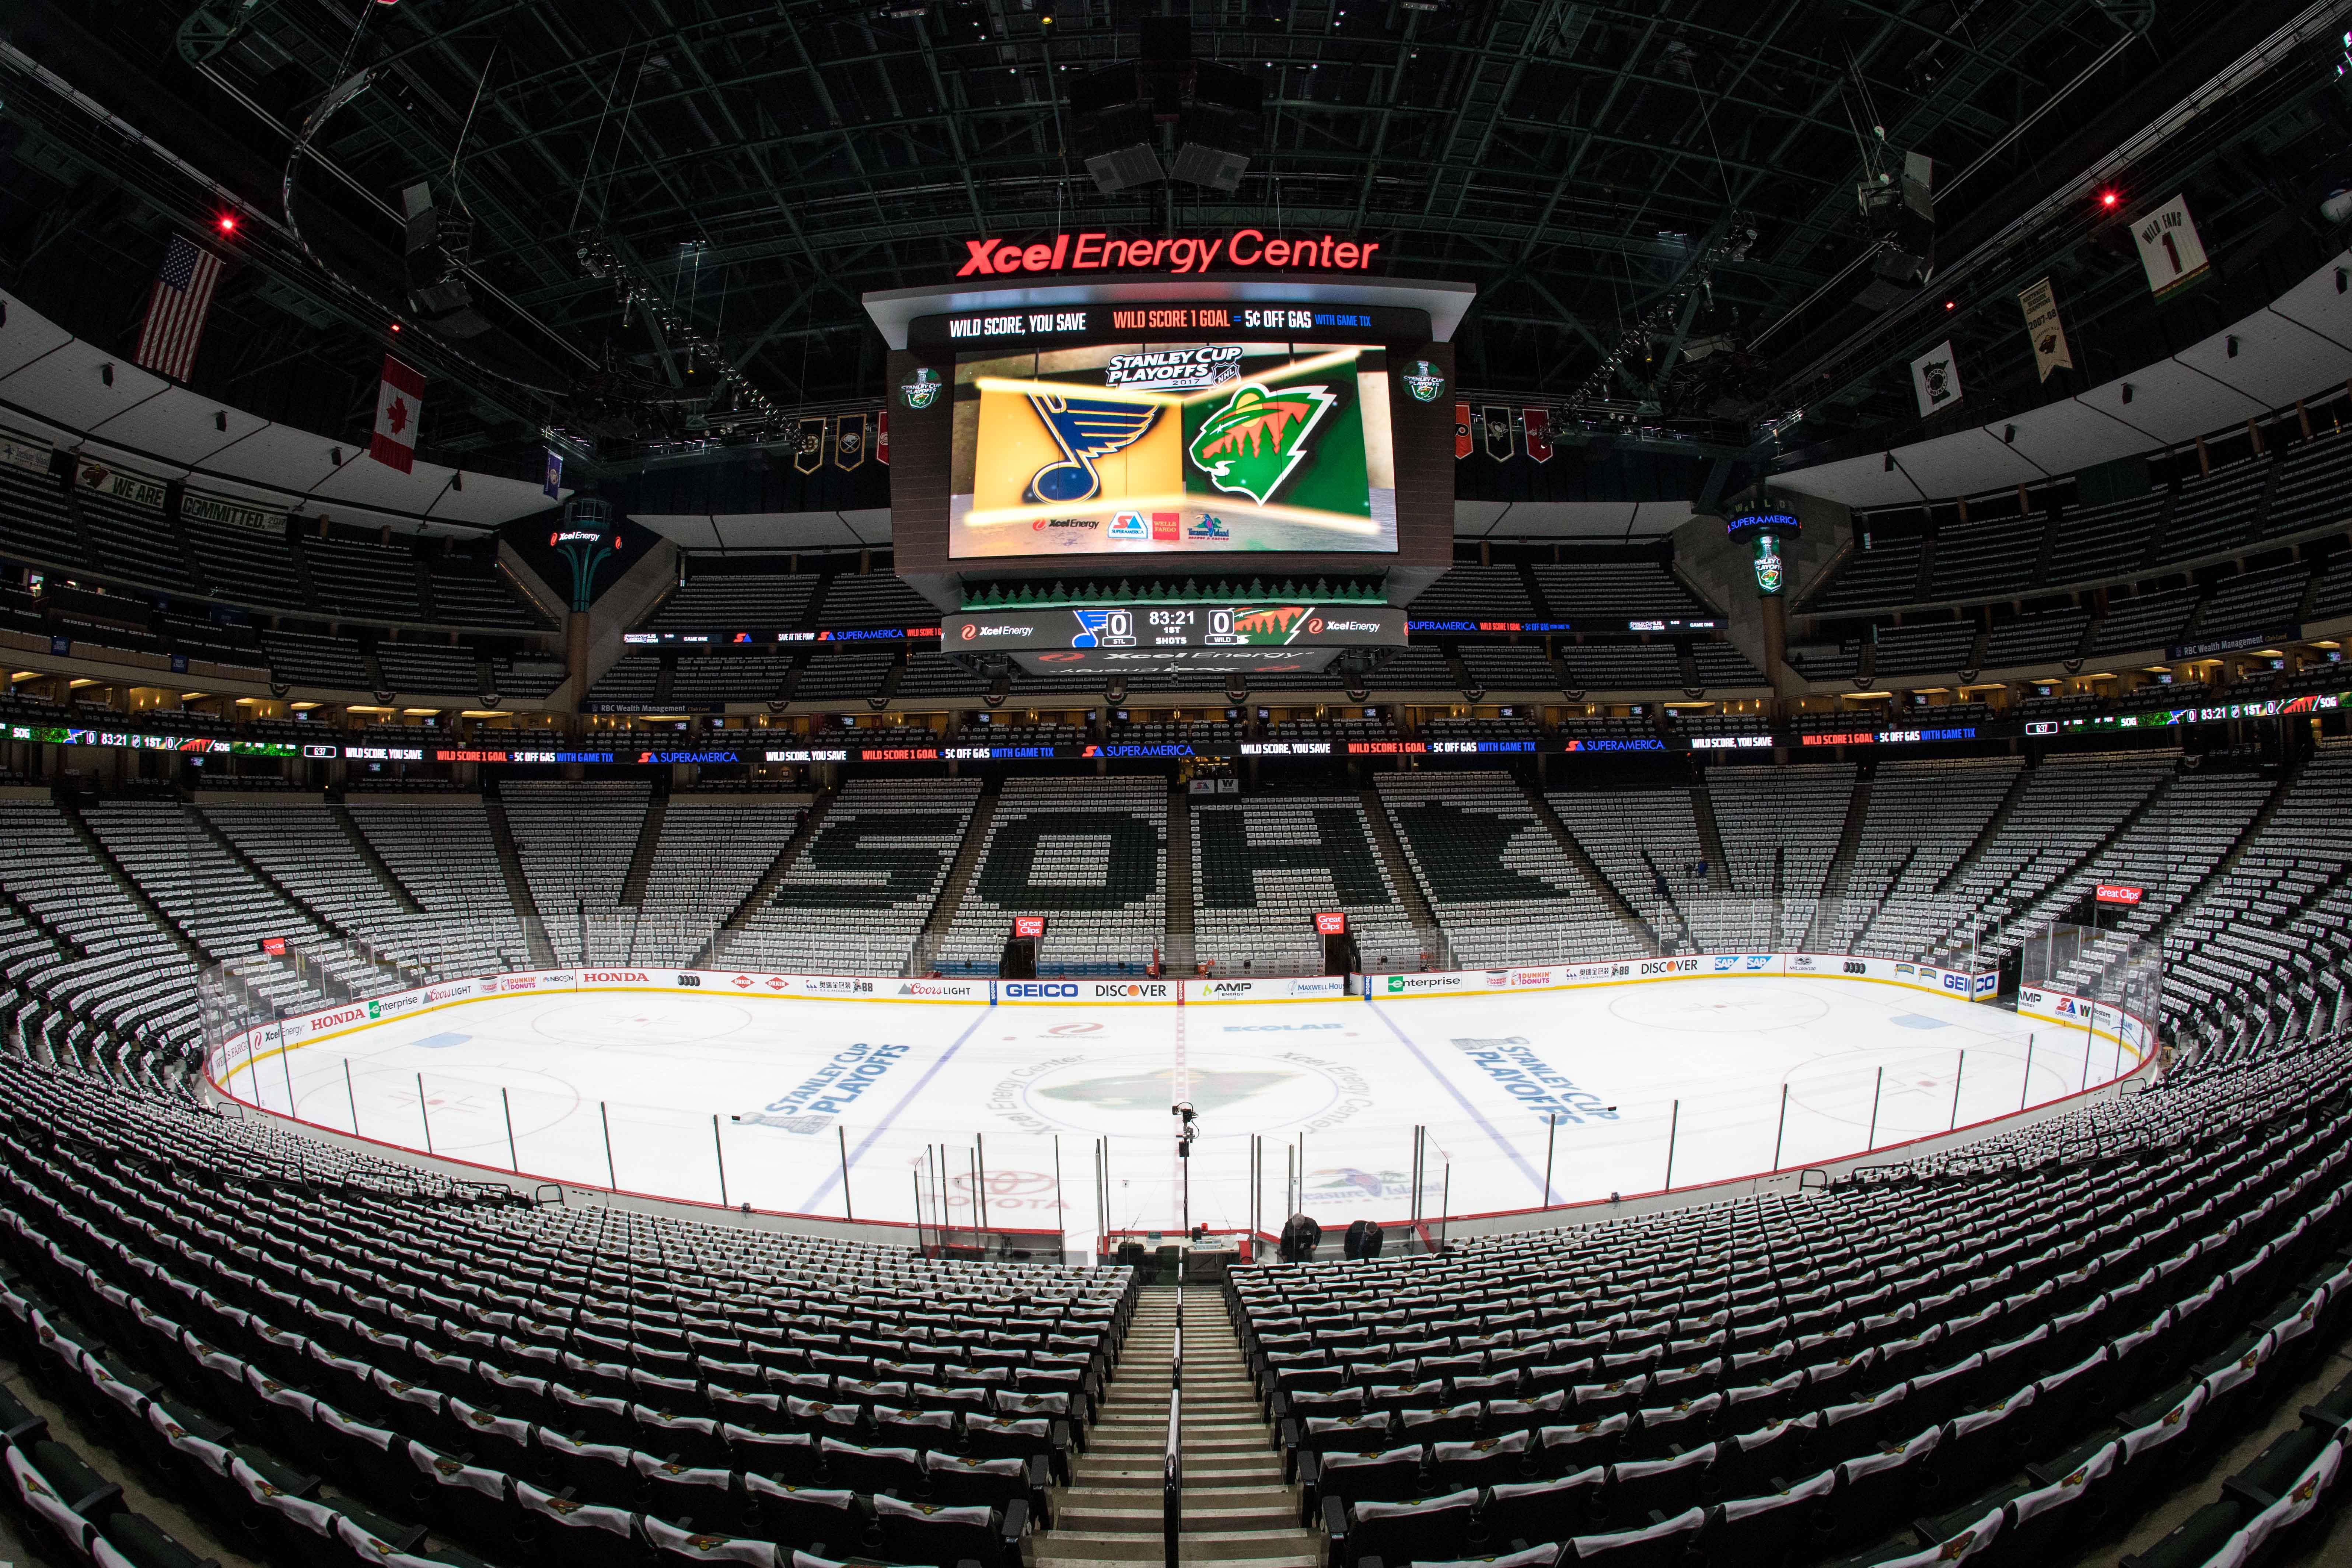 10008820-nhl-stanley-cup-playoffs-st.-louis-blues-at-minnesota-wild